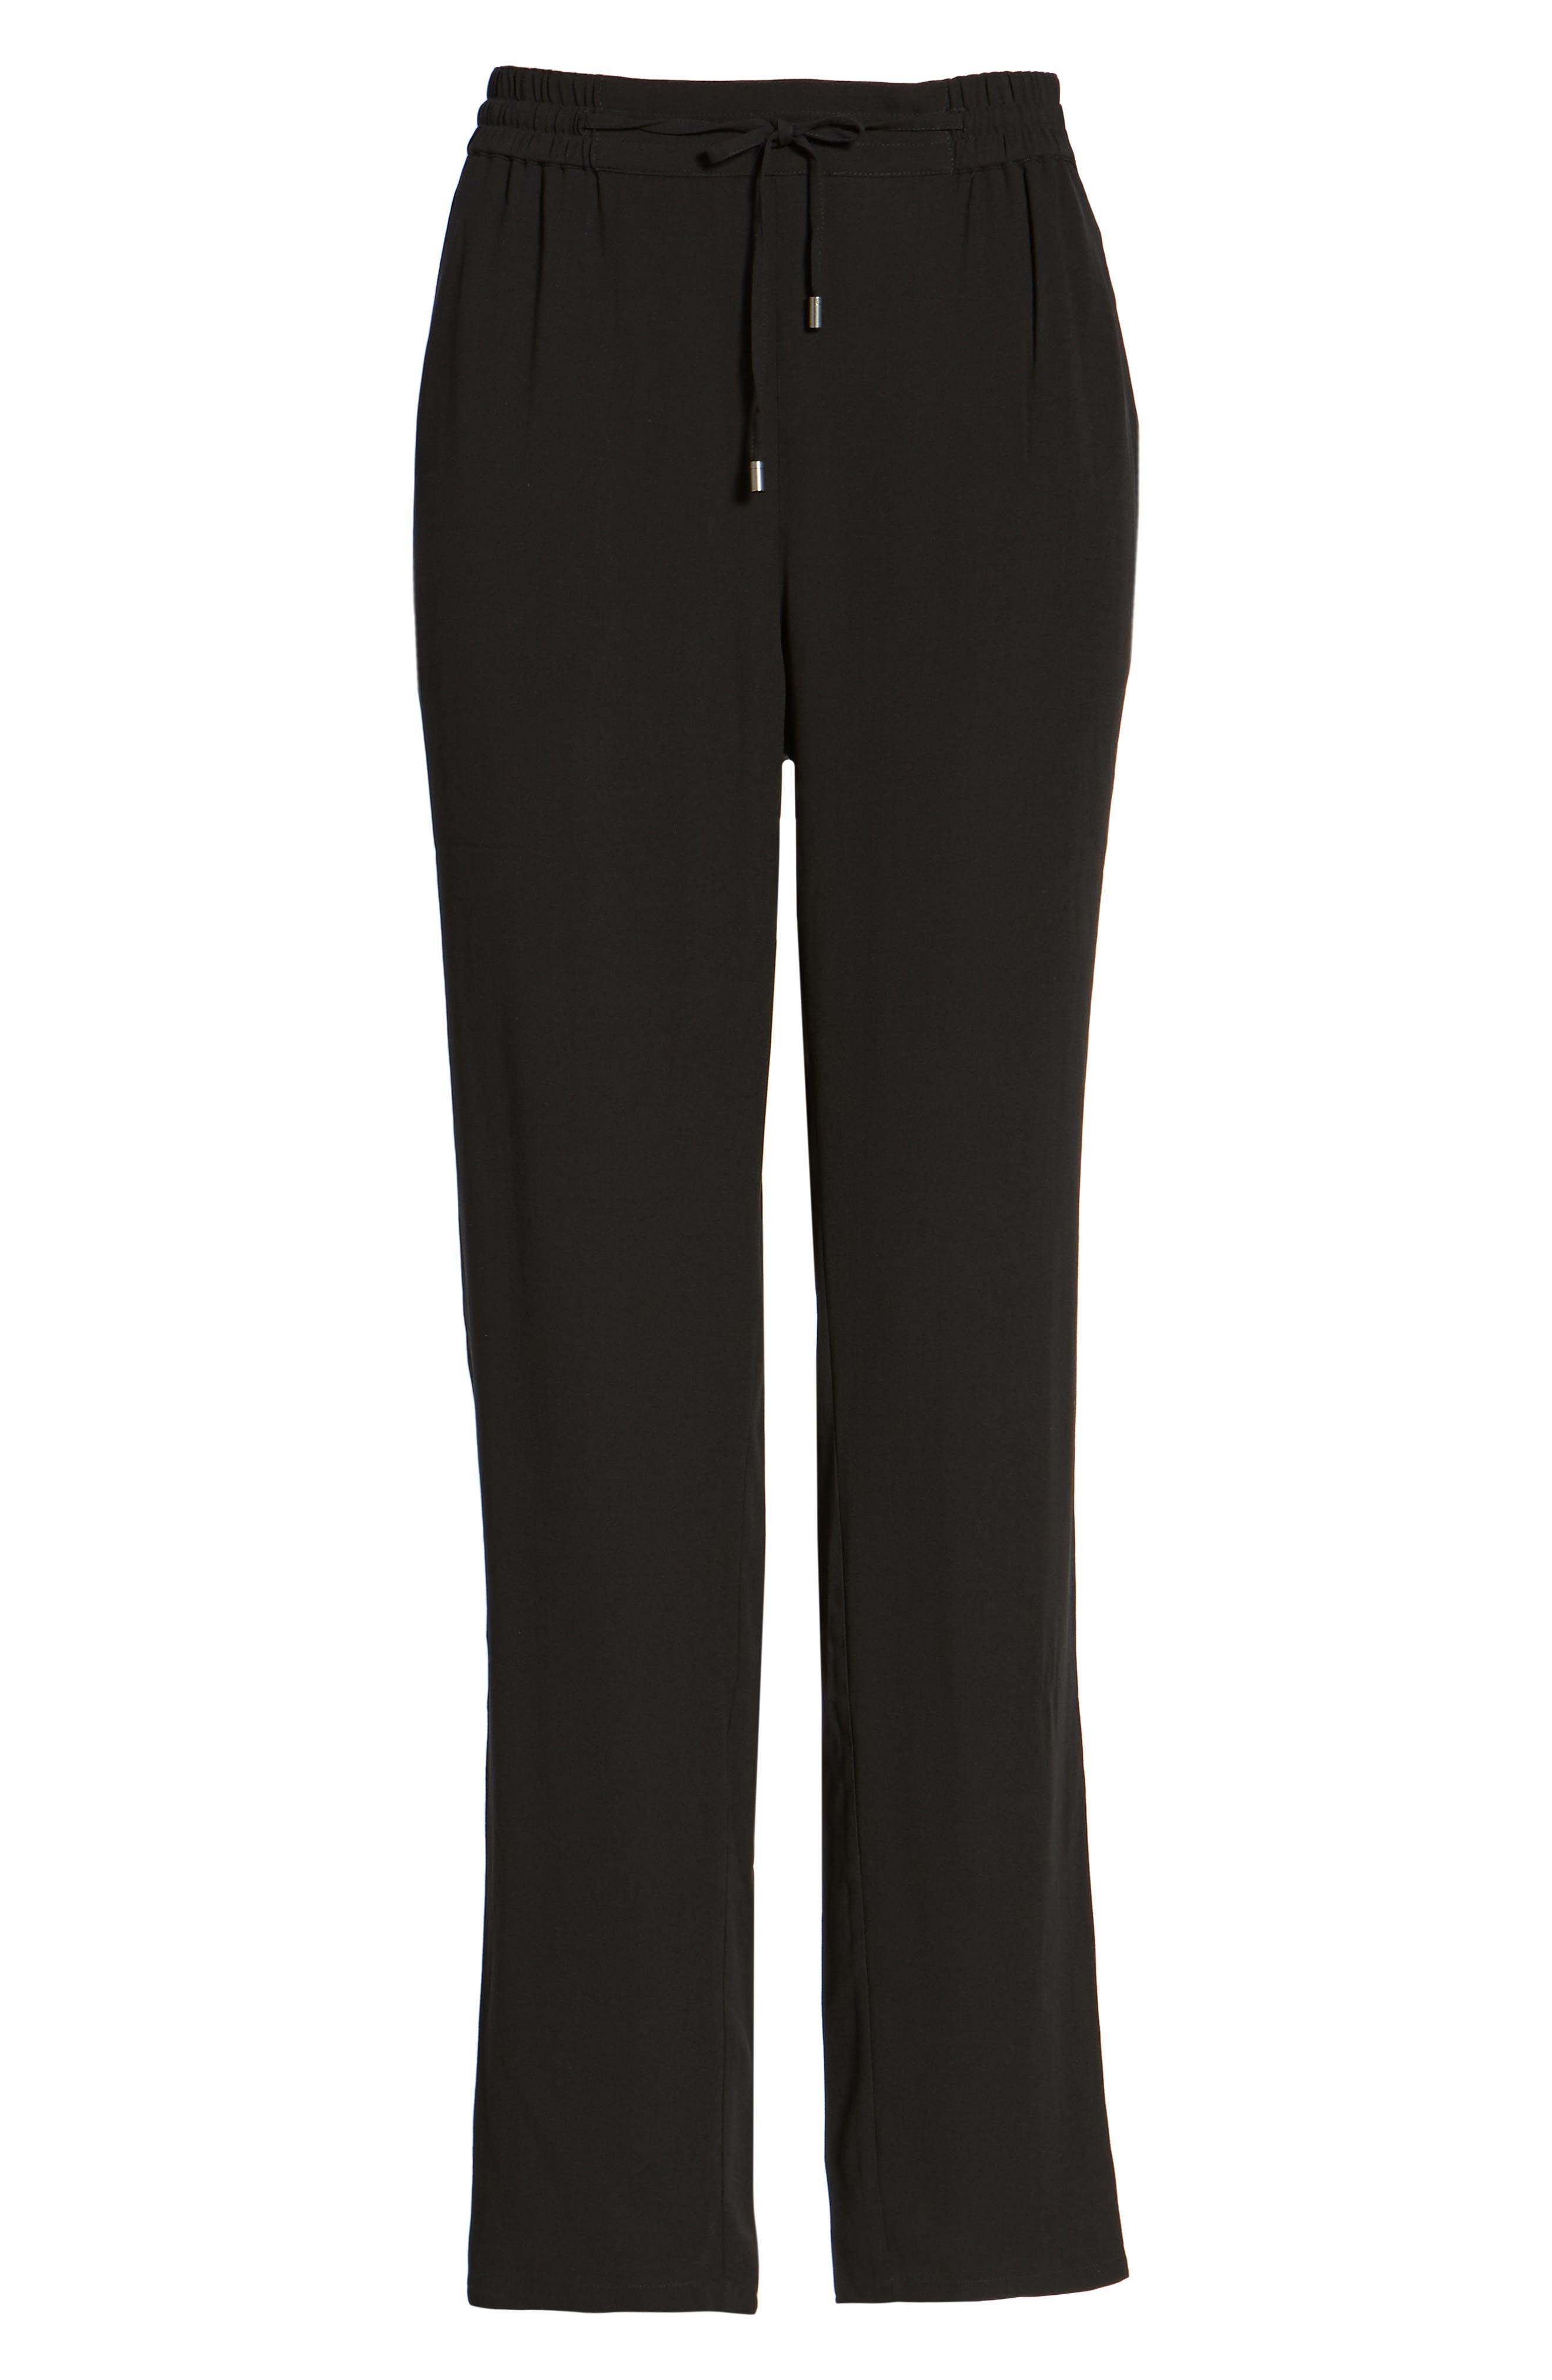 EILEEN FISHER Silk Crepe Ankle Pants, Main, color, 001